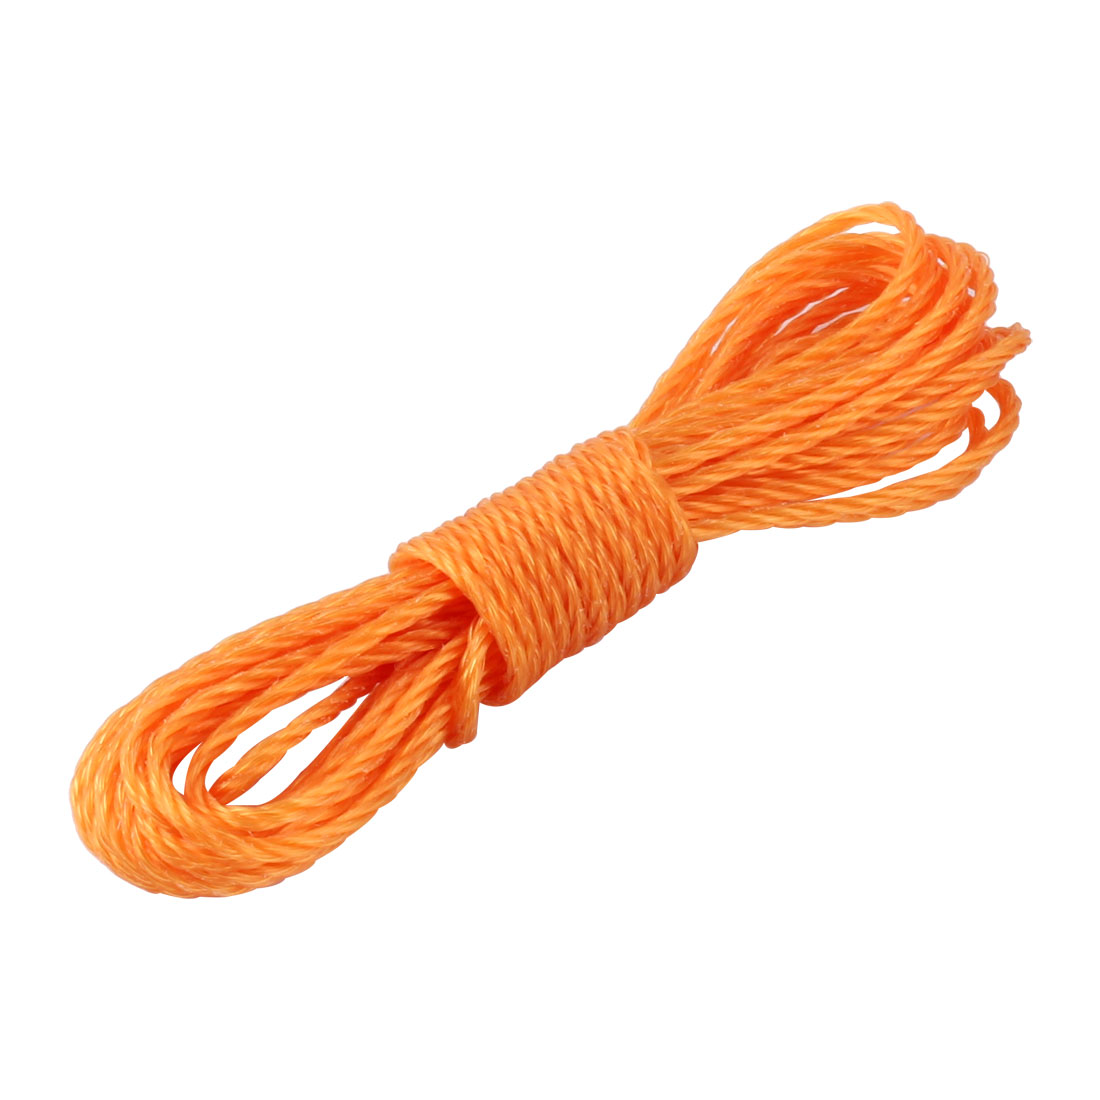 Household Outdoor Nylon String Clothes Line Clothesline Orange 5m Length